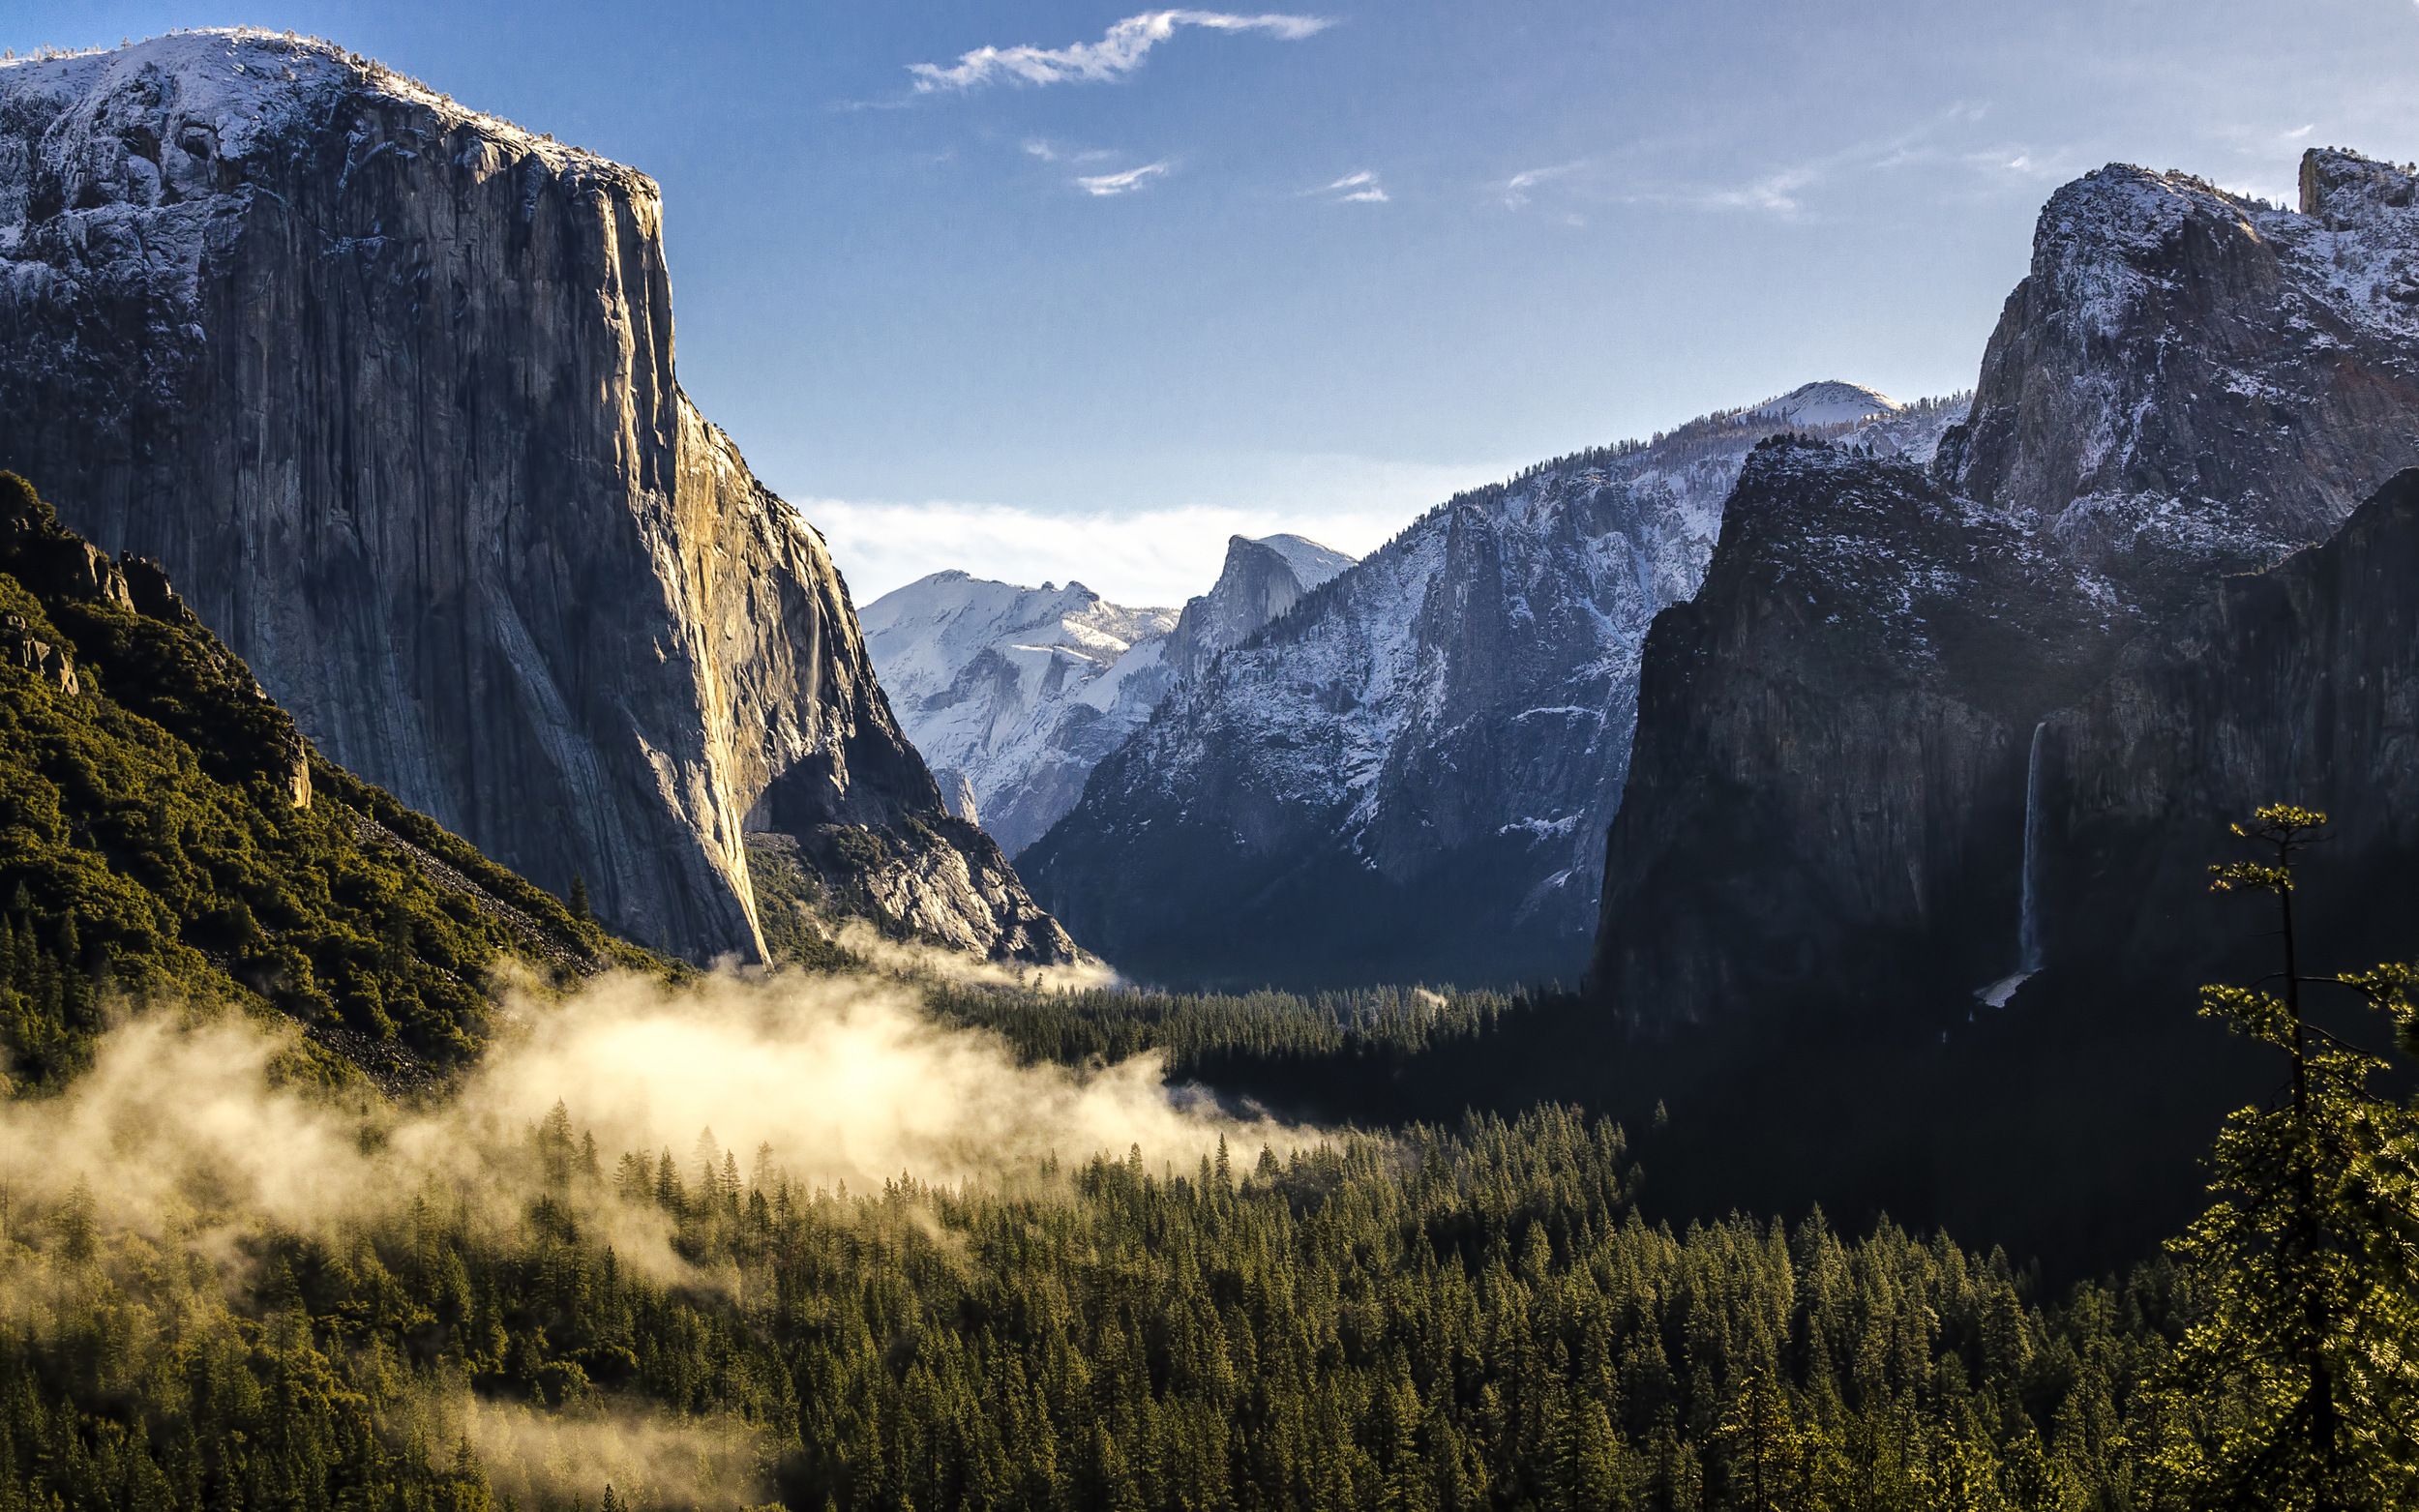 Wasim_Muklashy_Photography_OS X Yosemite_Rolling Through